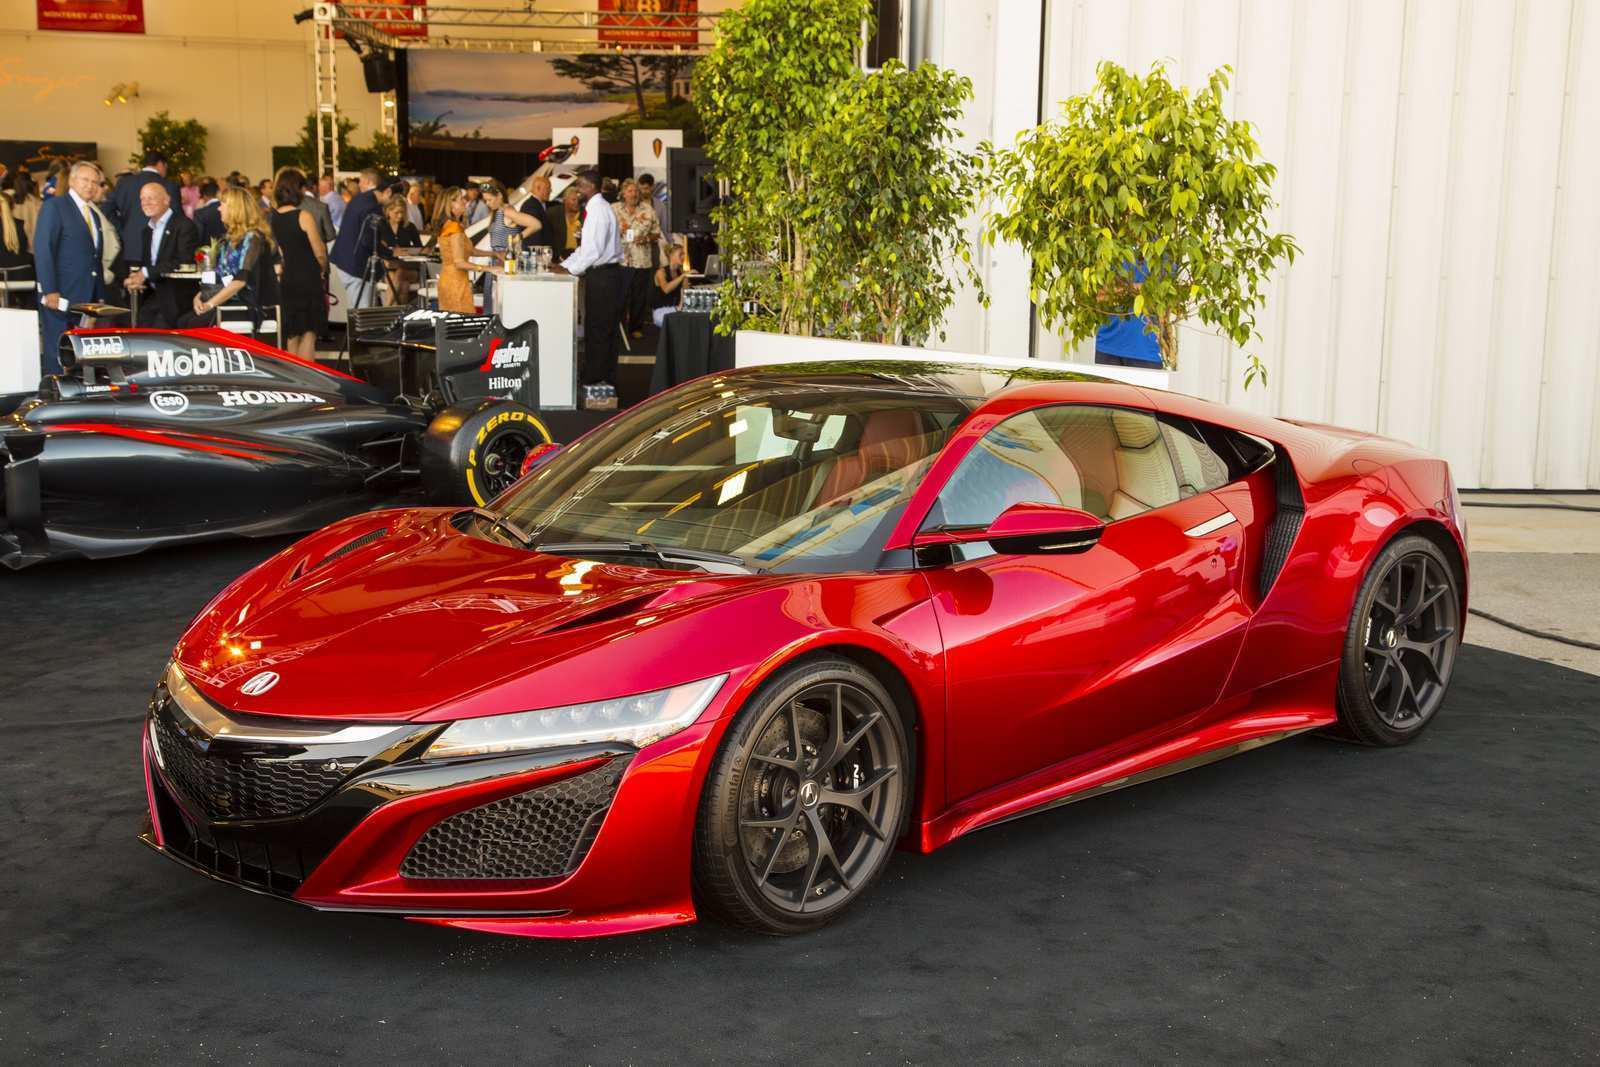 21 Gallery of 2020 Acura NSXs New Review with 2020 Acura NSXs